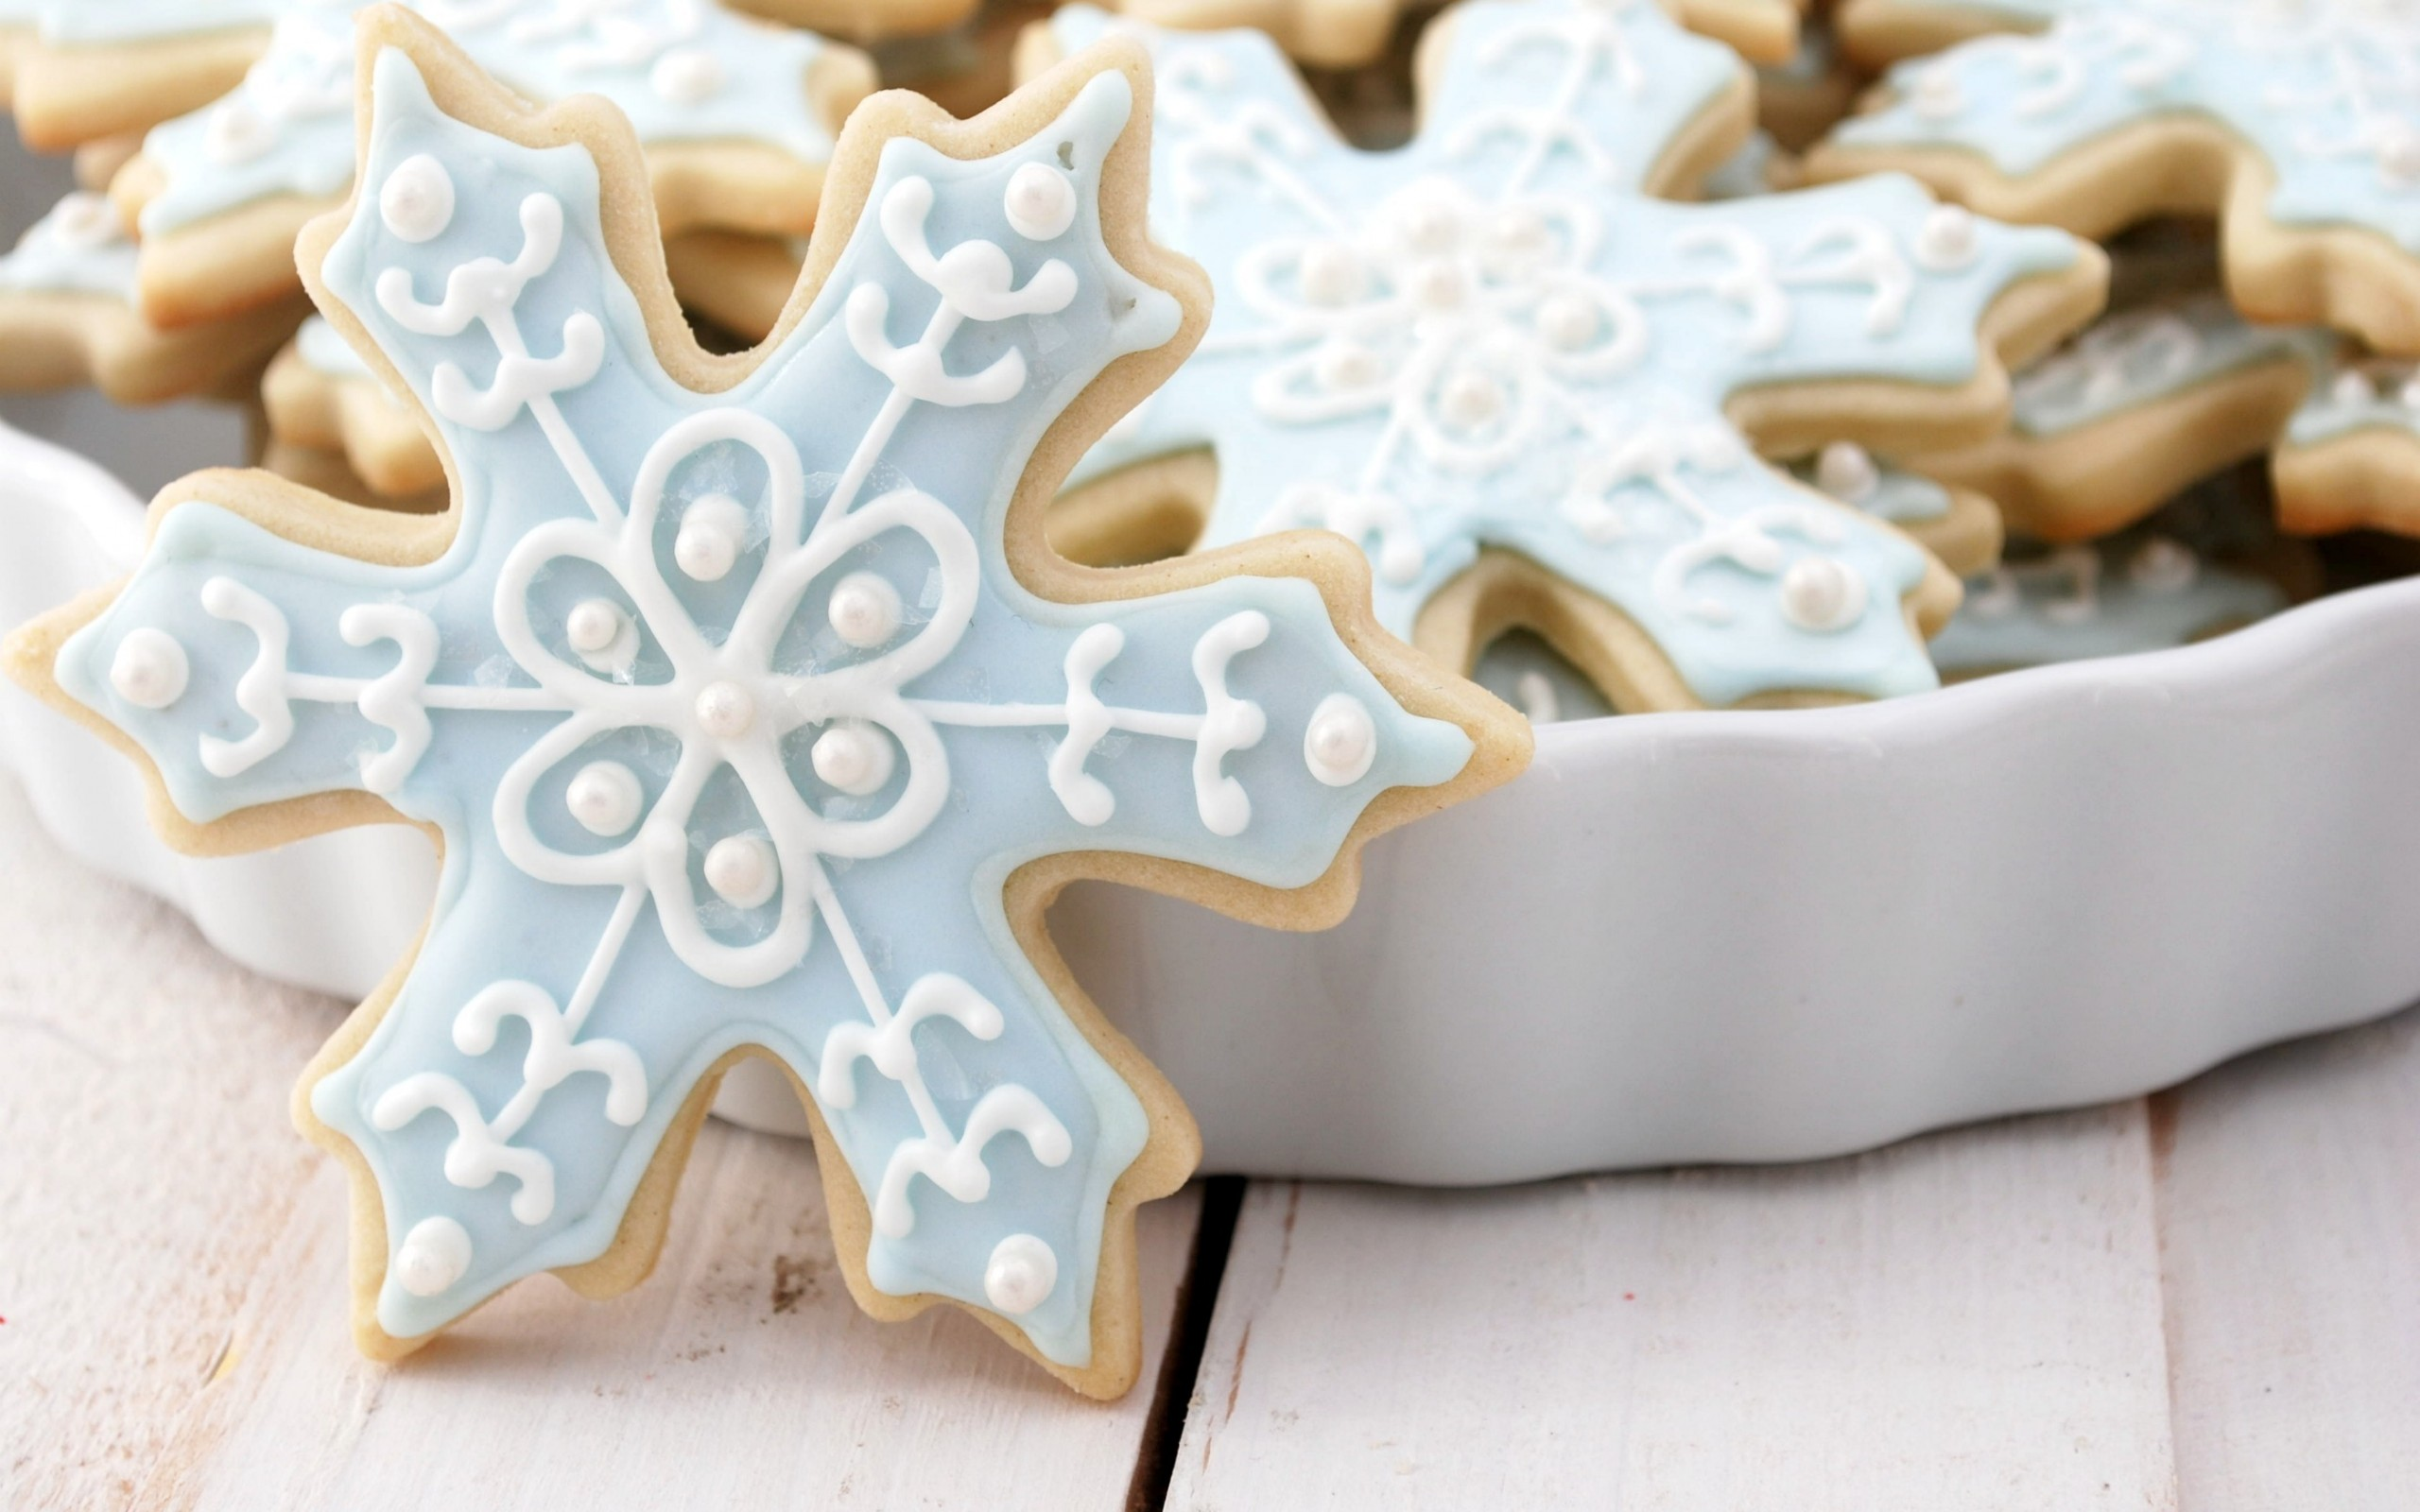 Christmas Cookies Background - Wallpaper, High Definition, High ...